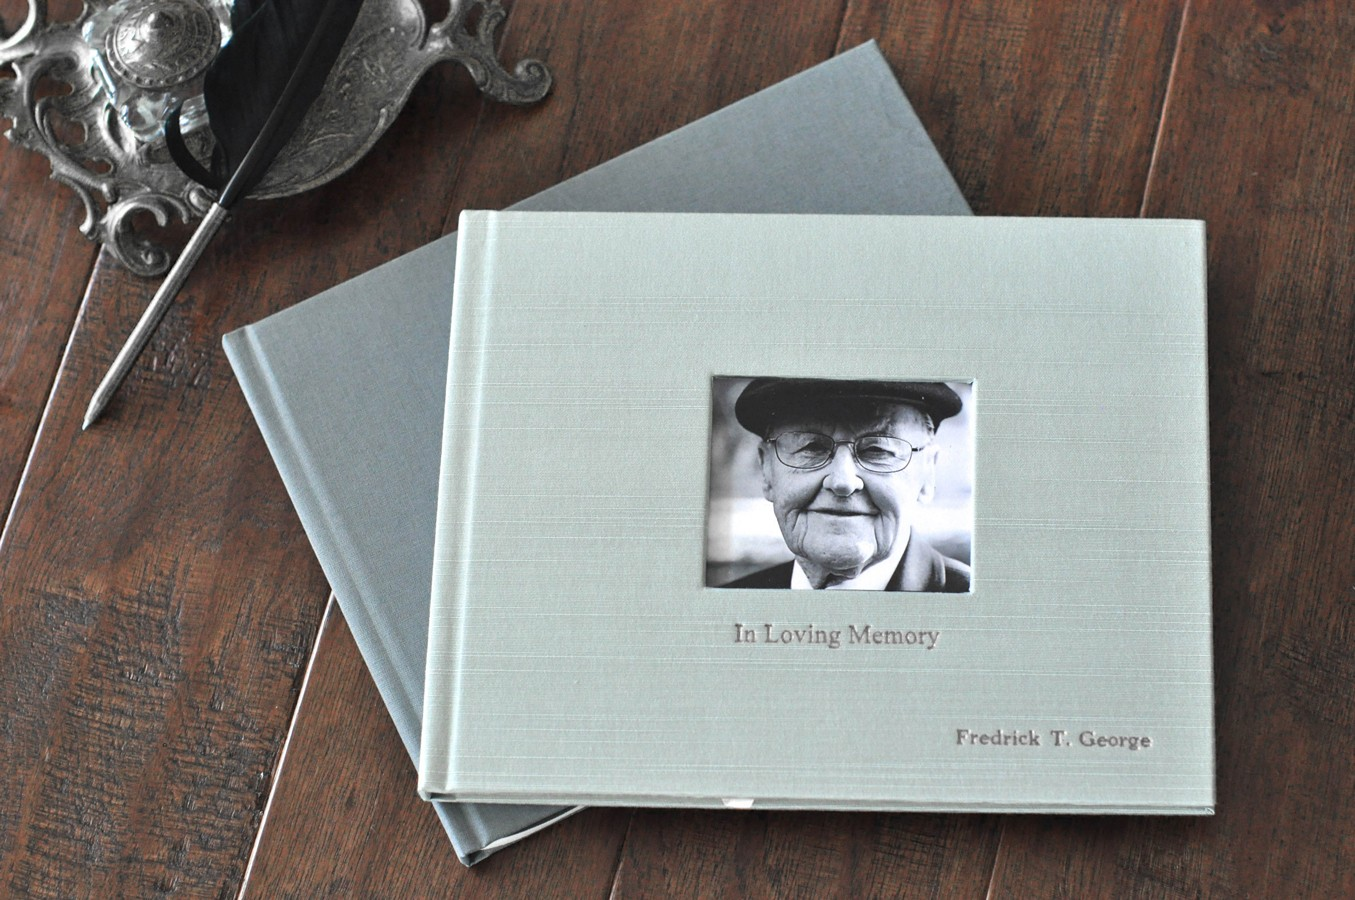 life celebration memorial book a meaningful keepsake by blue sky